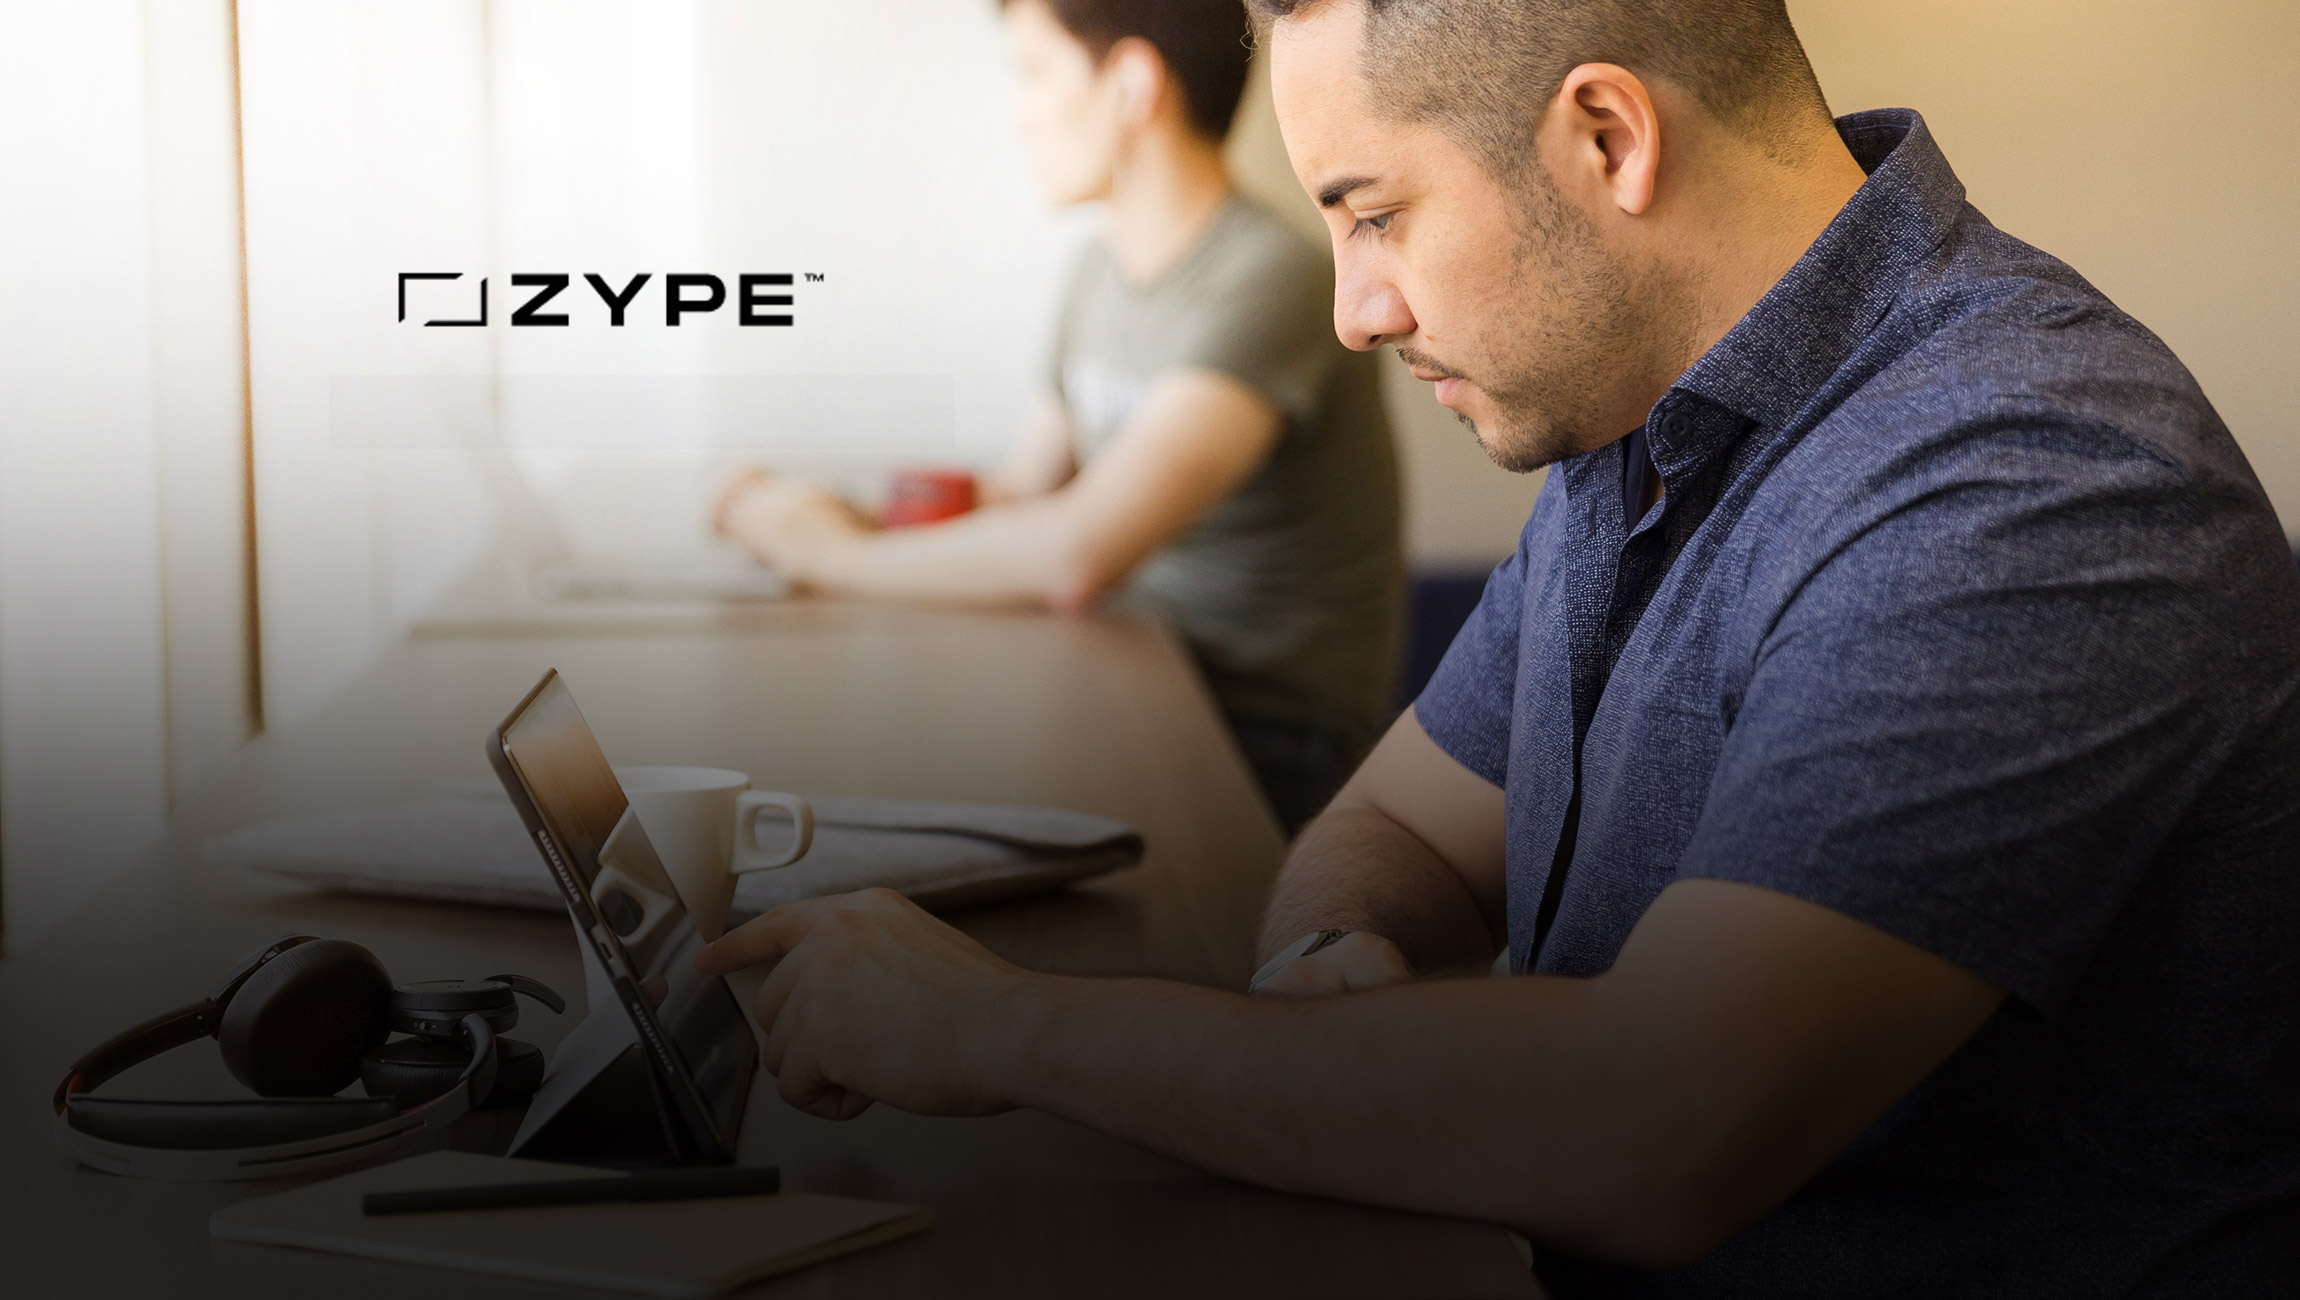 Zype Announces New SVP of Sales to Drive Company Growth